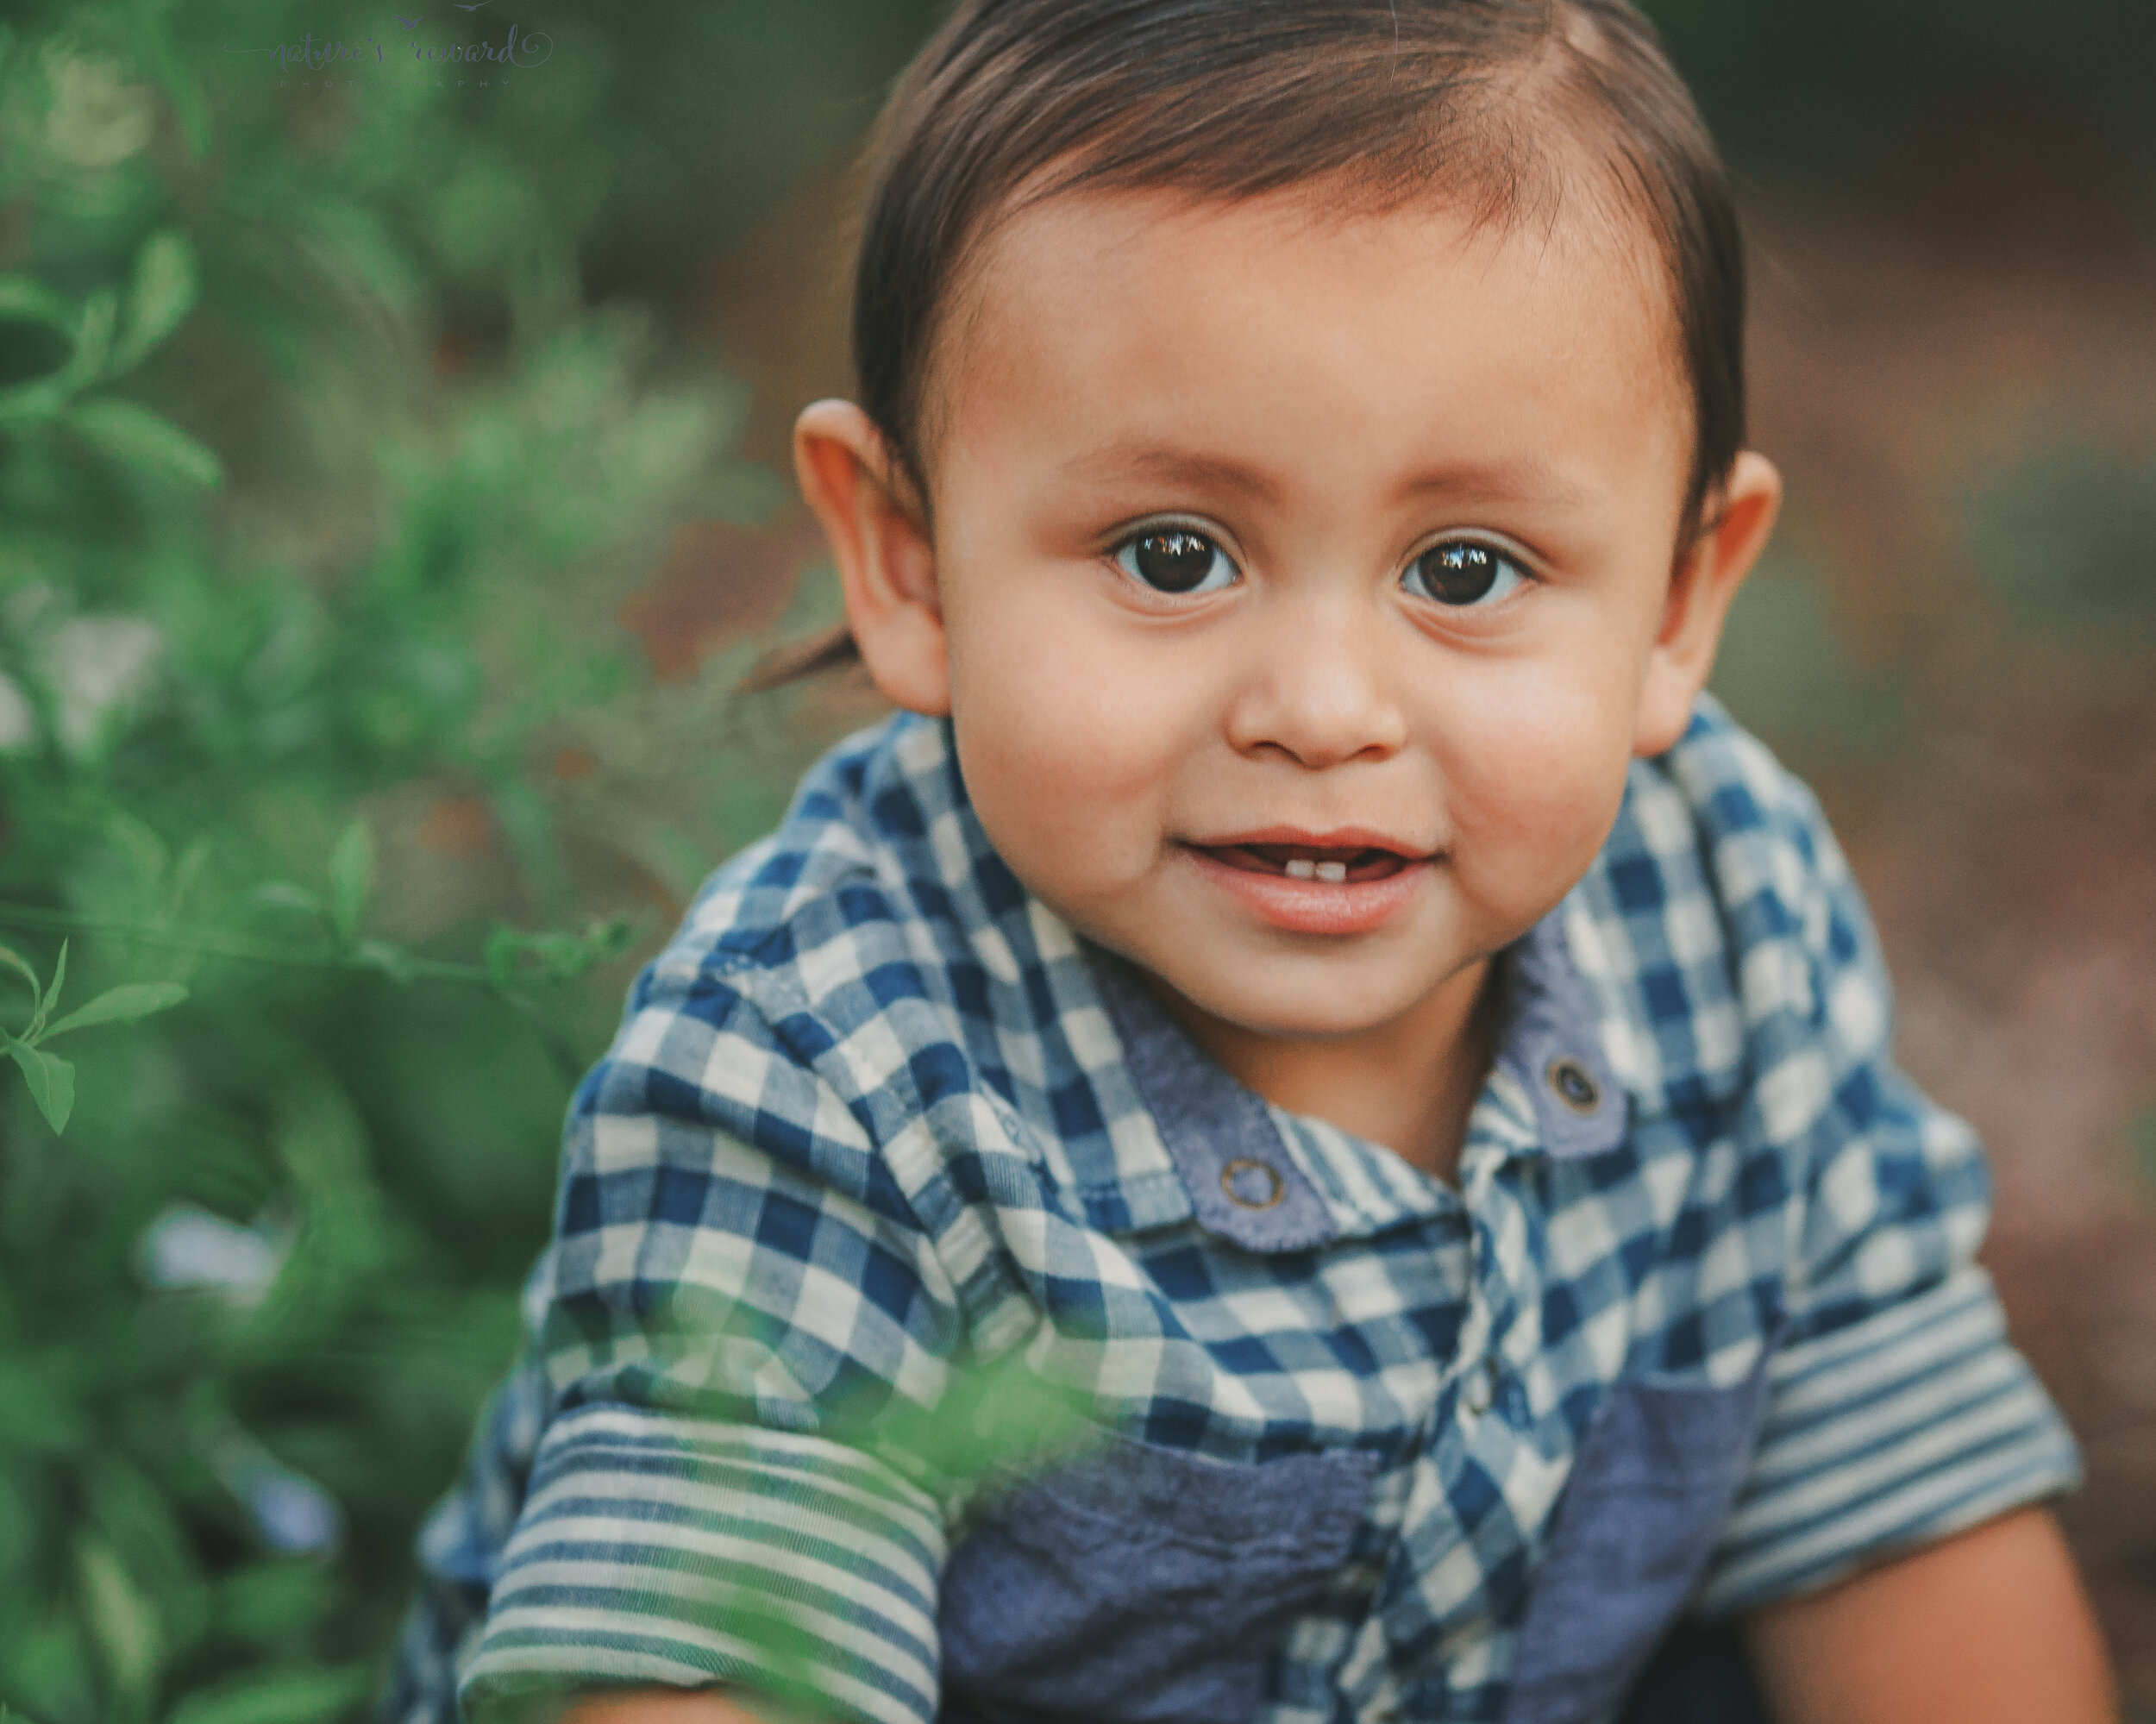 Young baby boy photography session in a park in redlands by San Bernardino photographer- Nature's rEward Photography